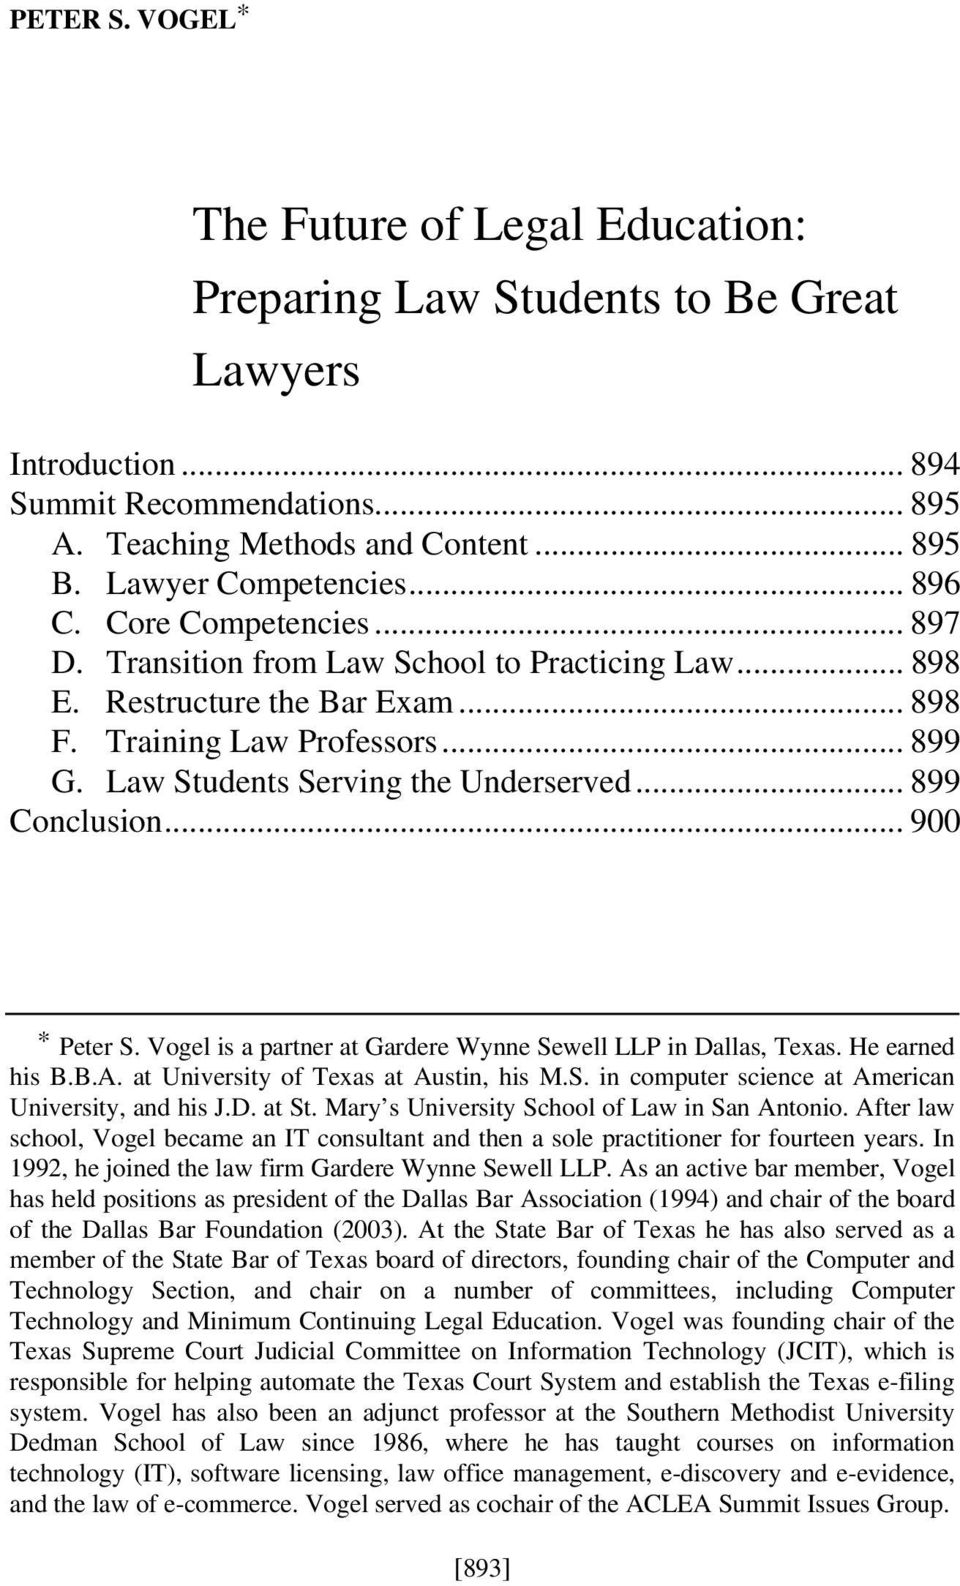 Law Students Serving the Underserved... 899 Conclusion... 900 * Peter S. Vogel is a partner at Gardere Wynne Sewell LLP in Dallas, Texas. He earned his B.B.A. at University of Texas at Austin, his M.